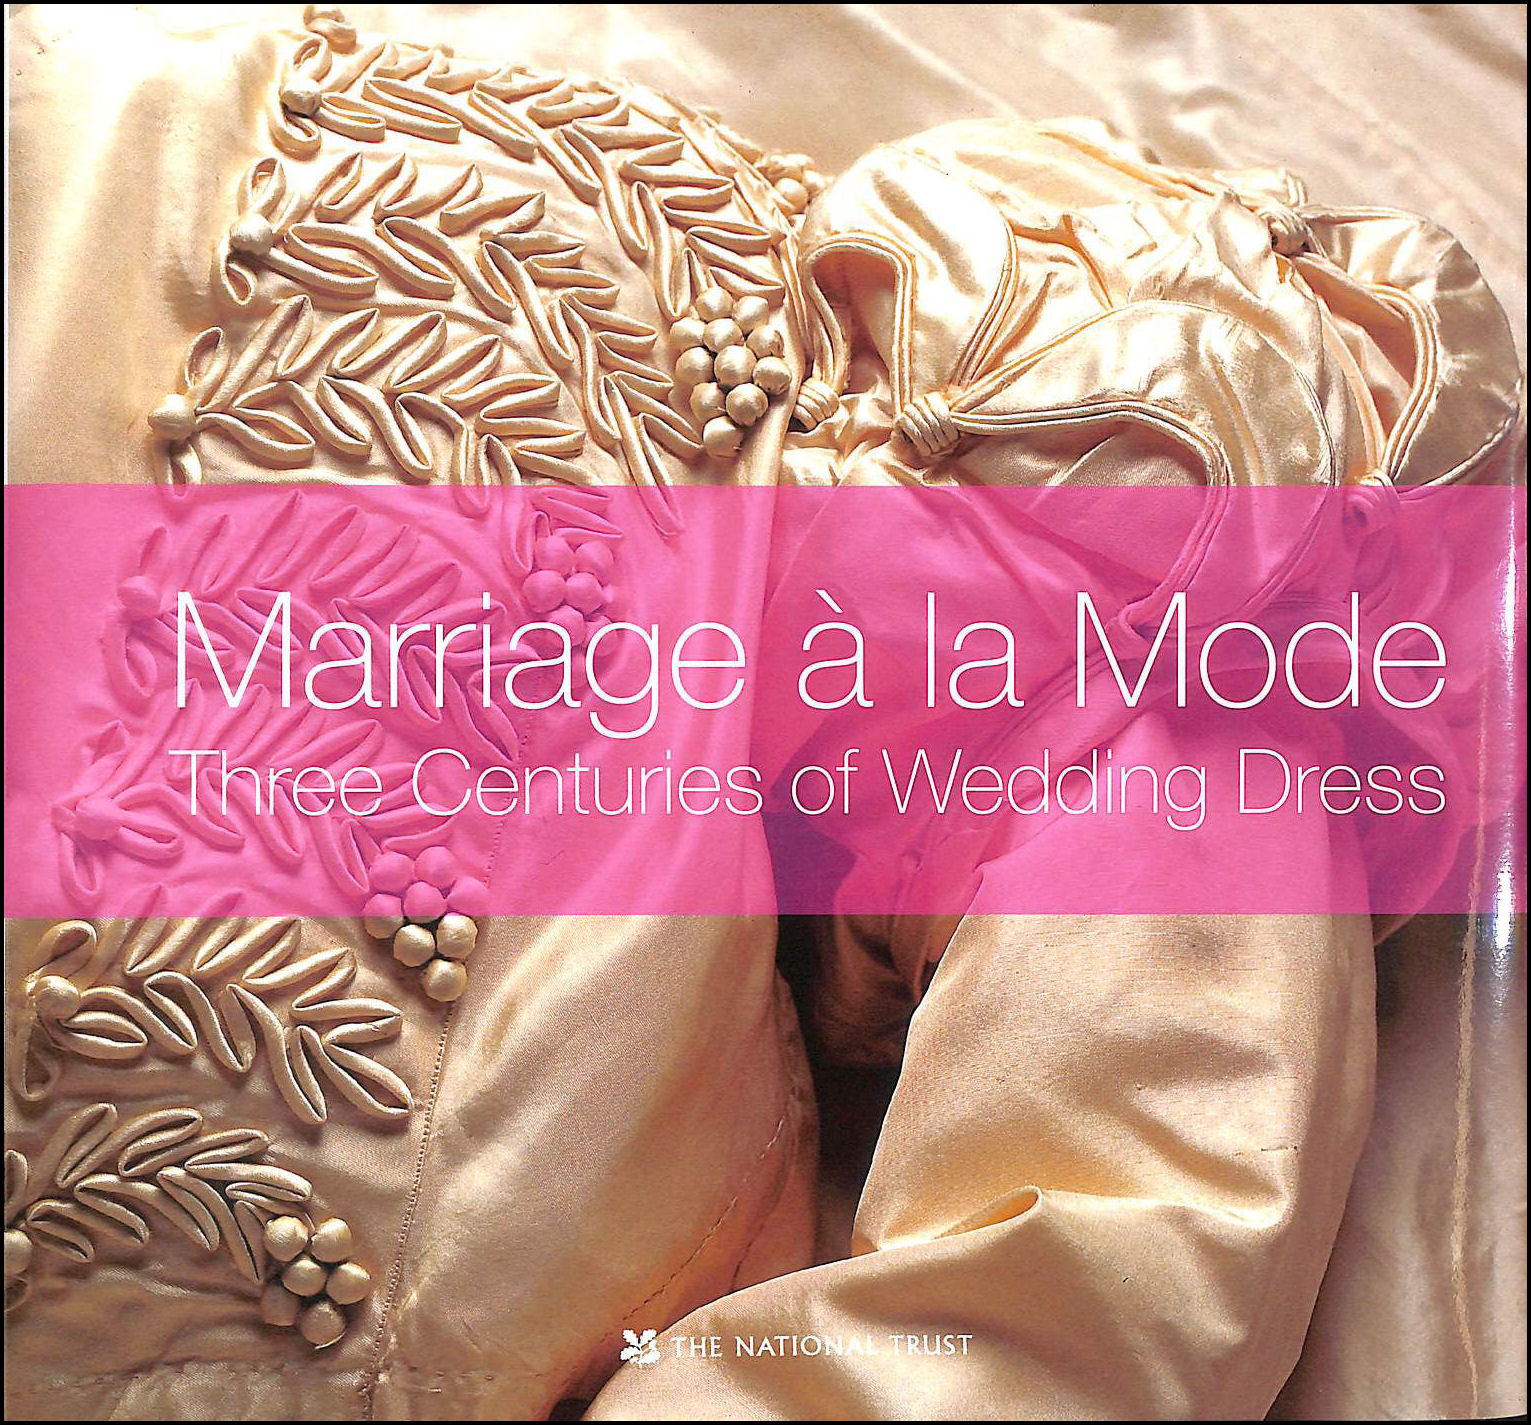 Image for Marriage a la Mode: Three Centuries of Wedding Dress